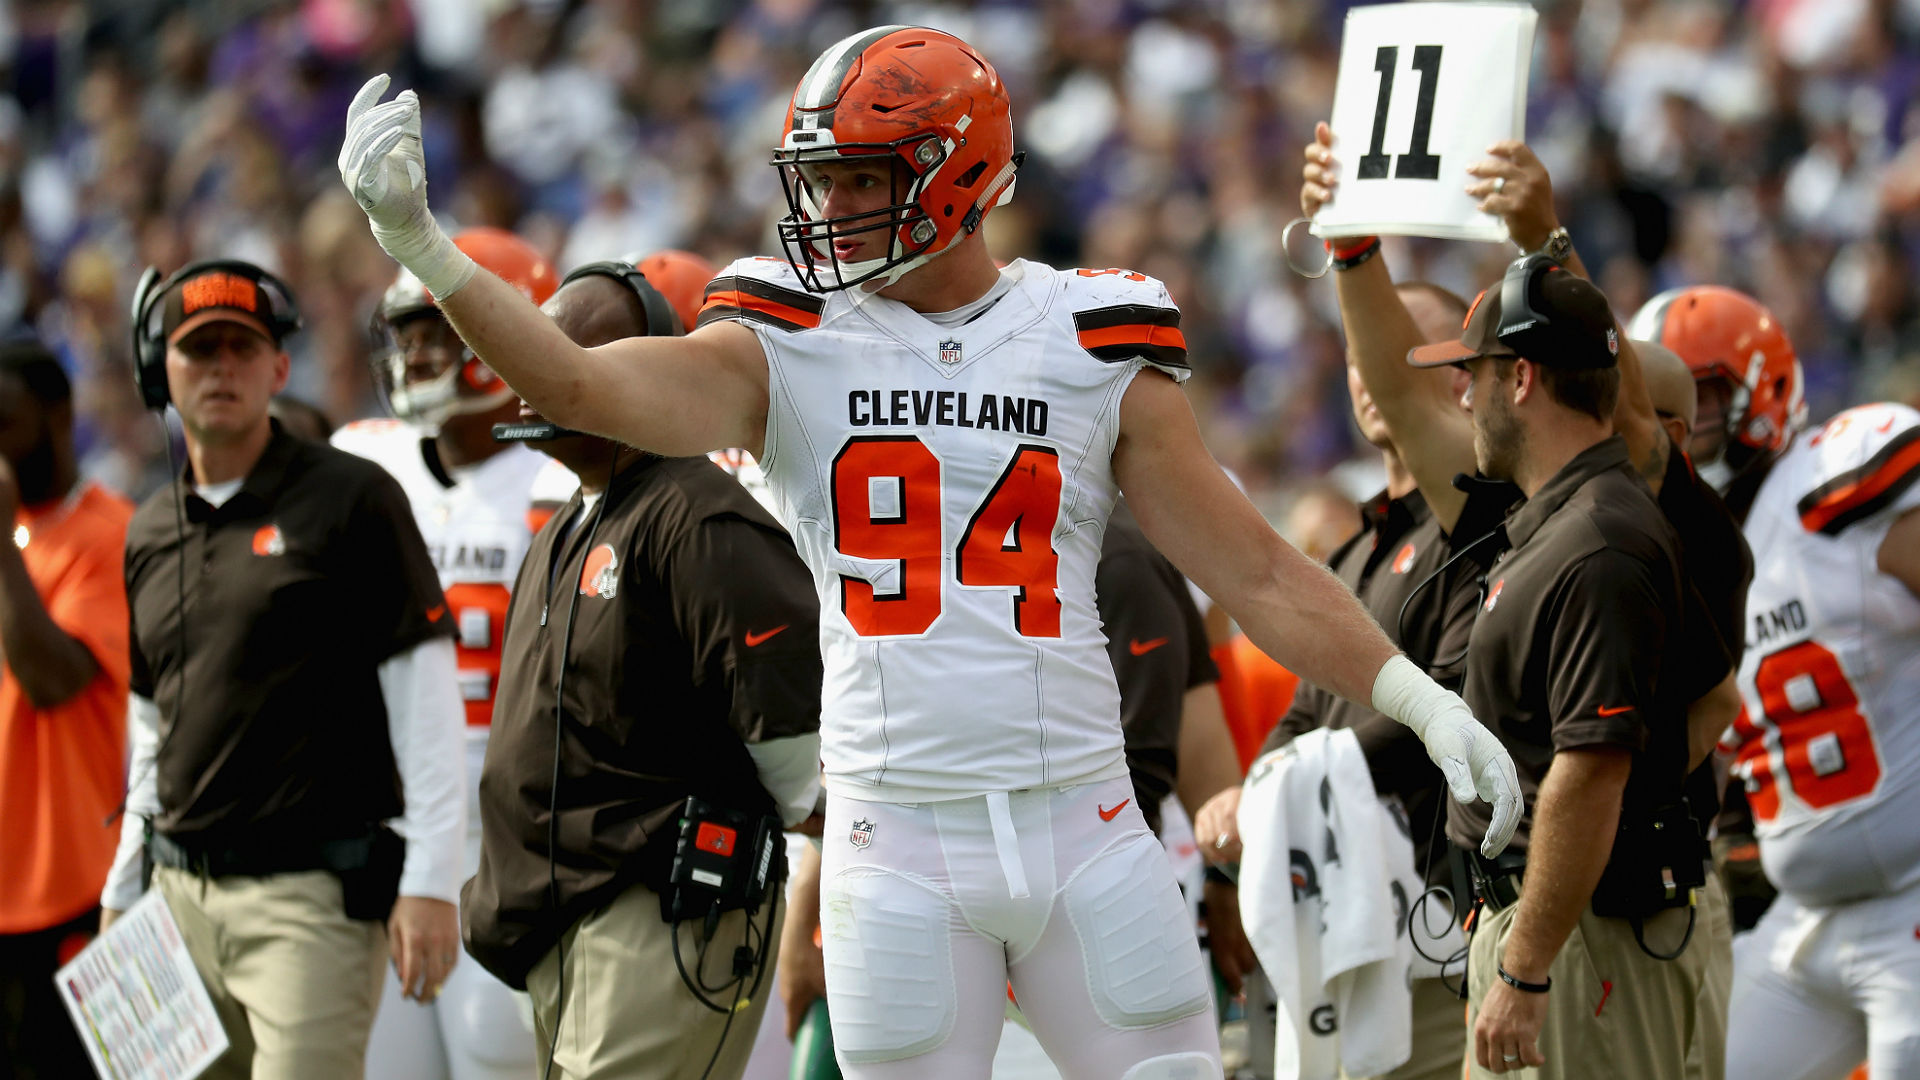 NFL free agency news: Browns waive 'Hard Knocks' standout Carl Nassib